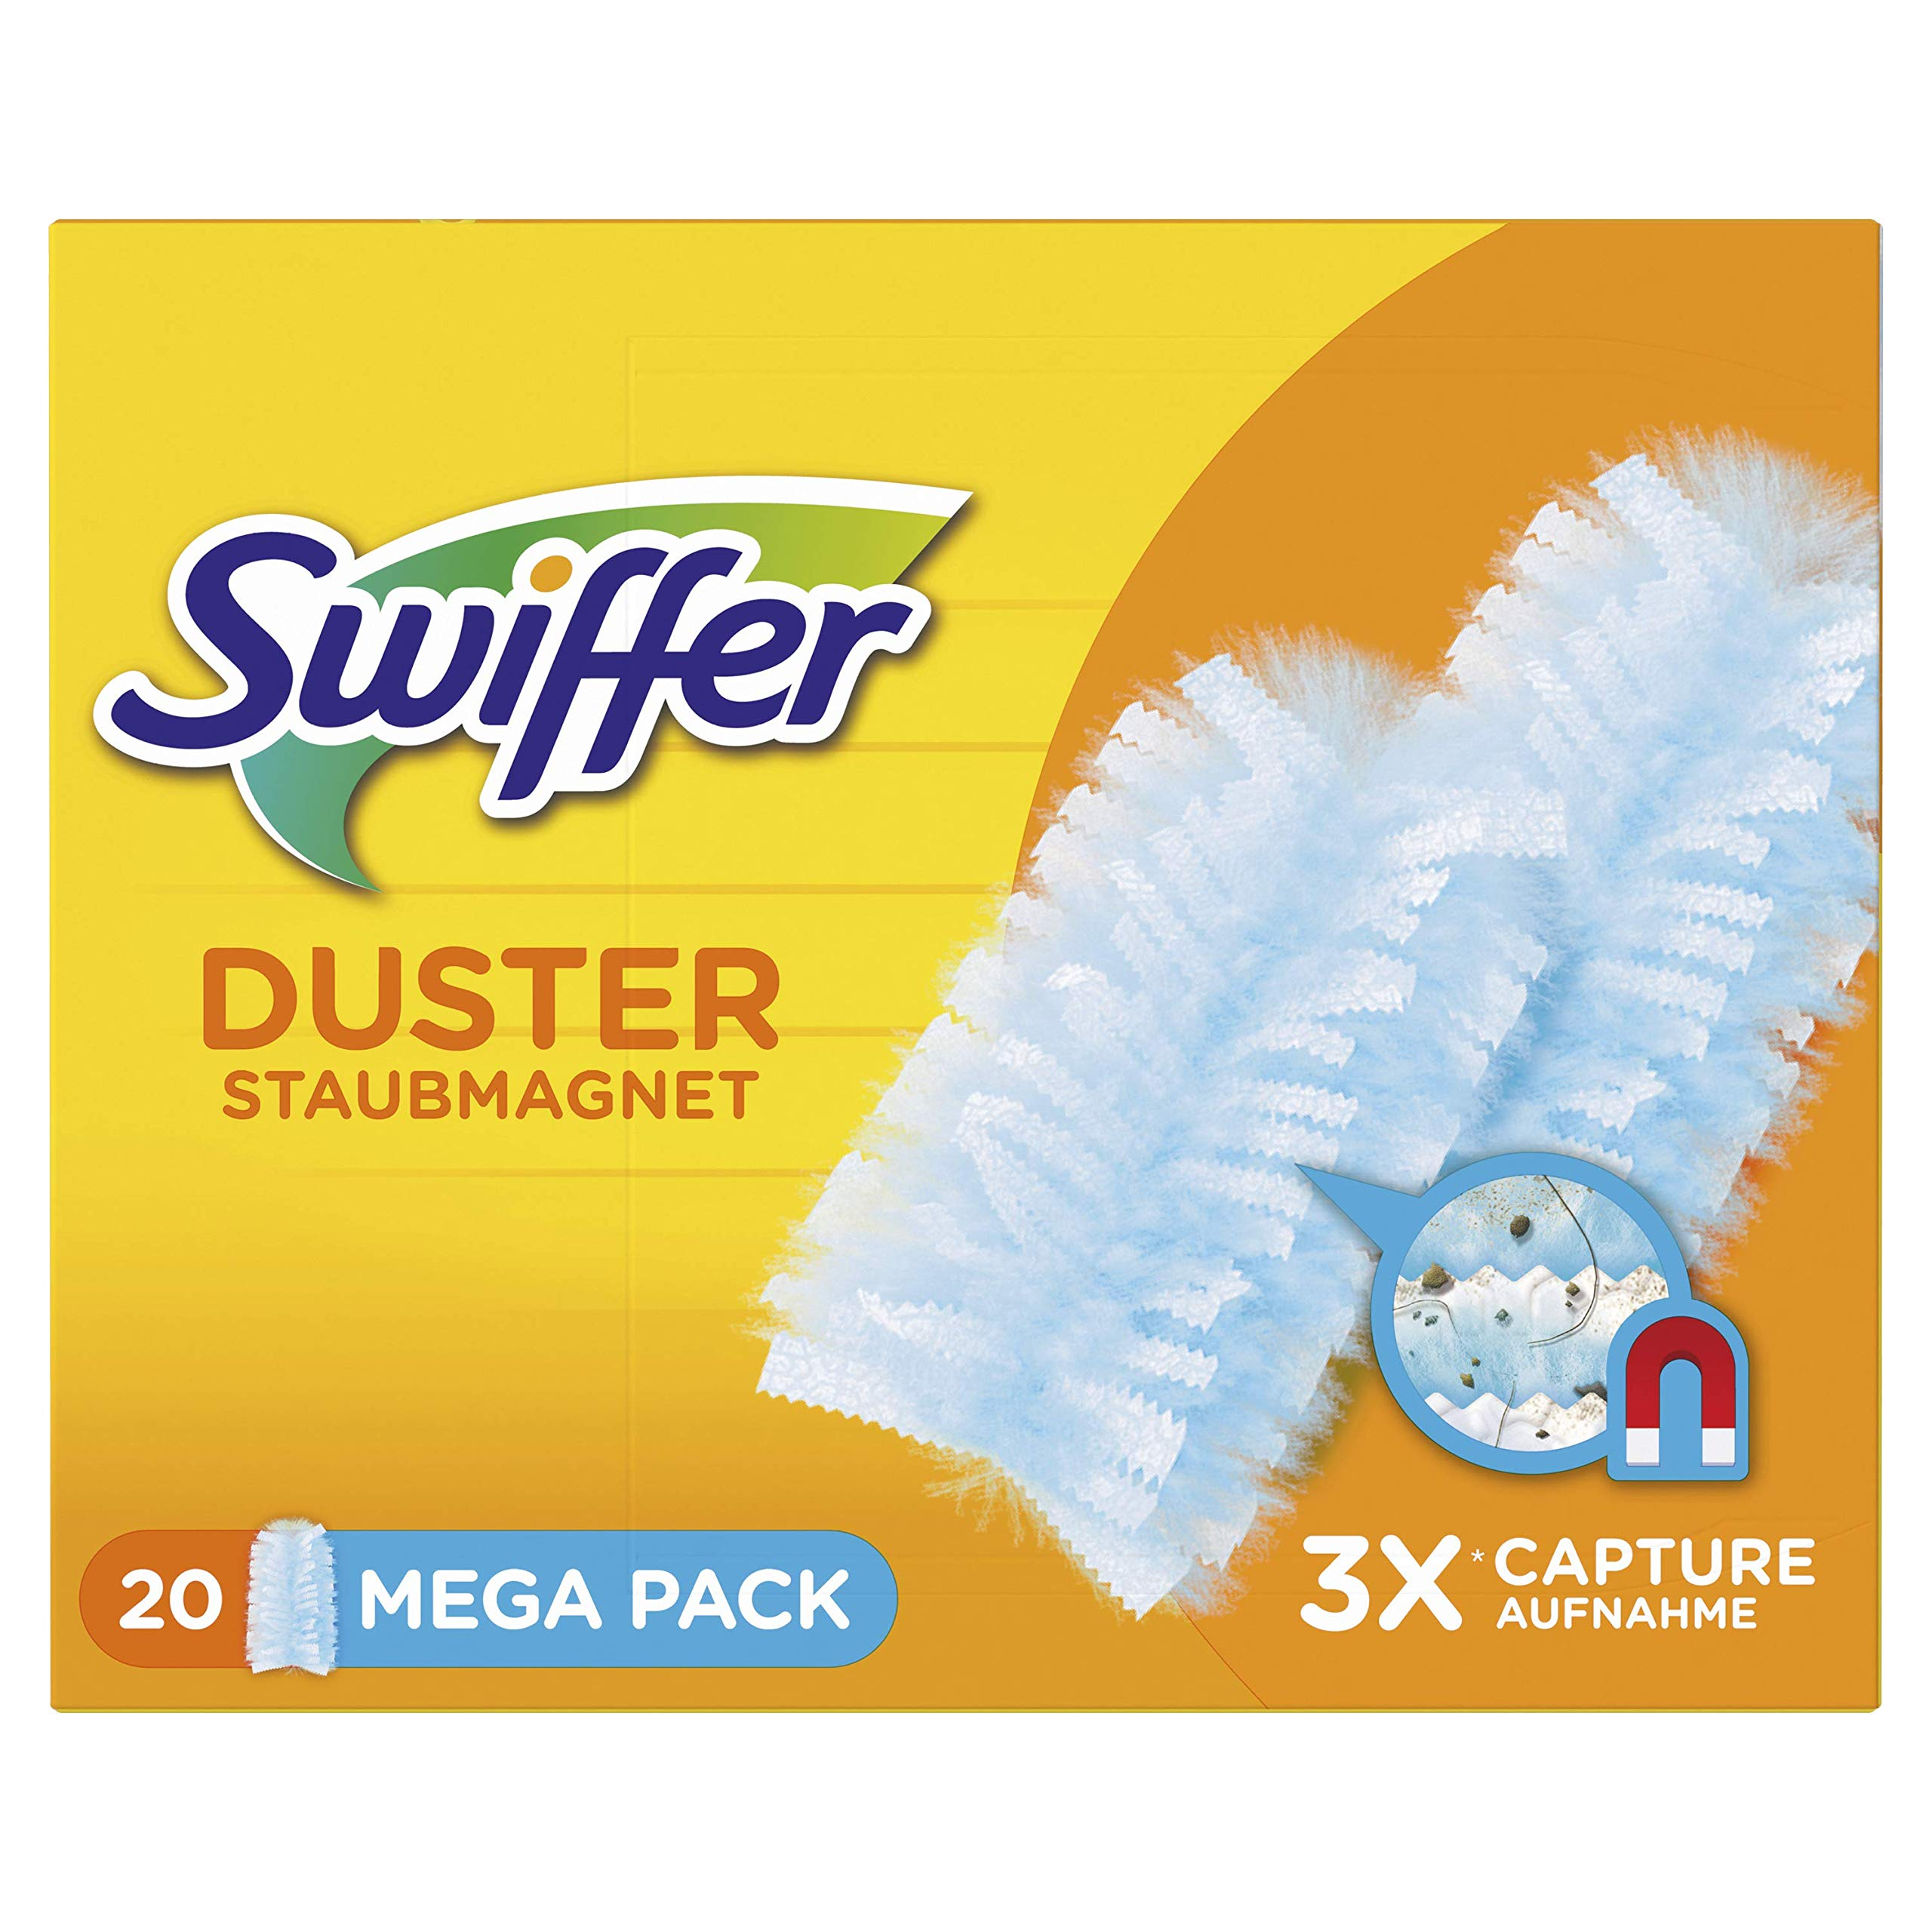 Swiffer Duster, Blue, pack of 20